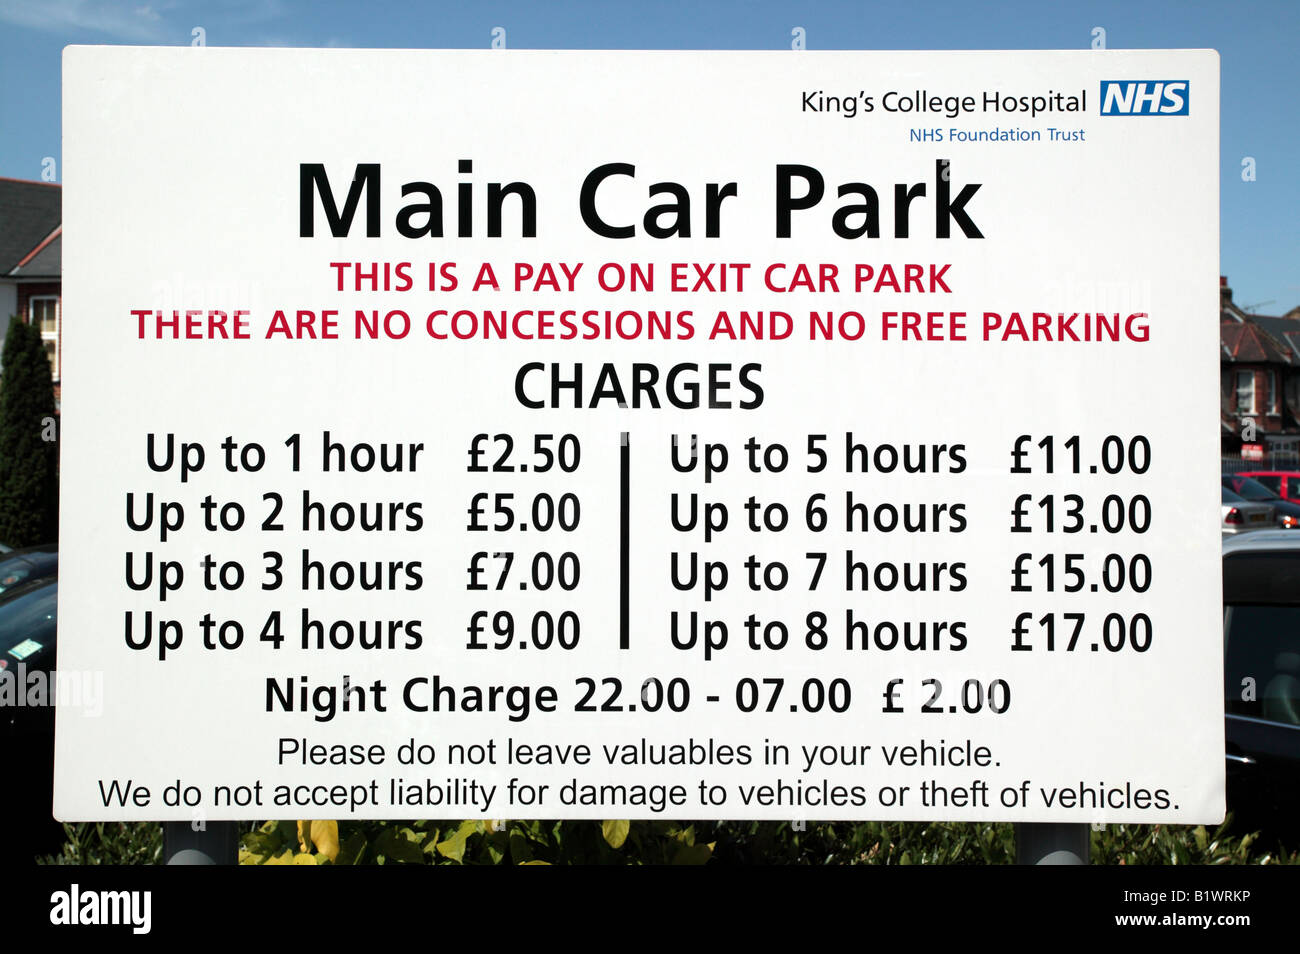 Sign showing the high car parking charges at King's College Hospital NHS Foundation Trust - Stock Image